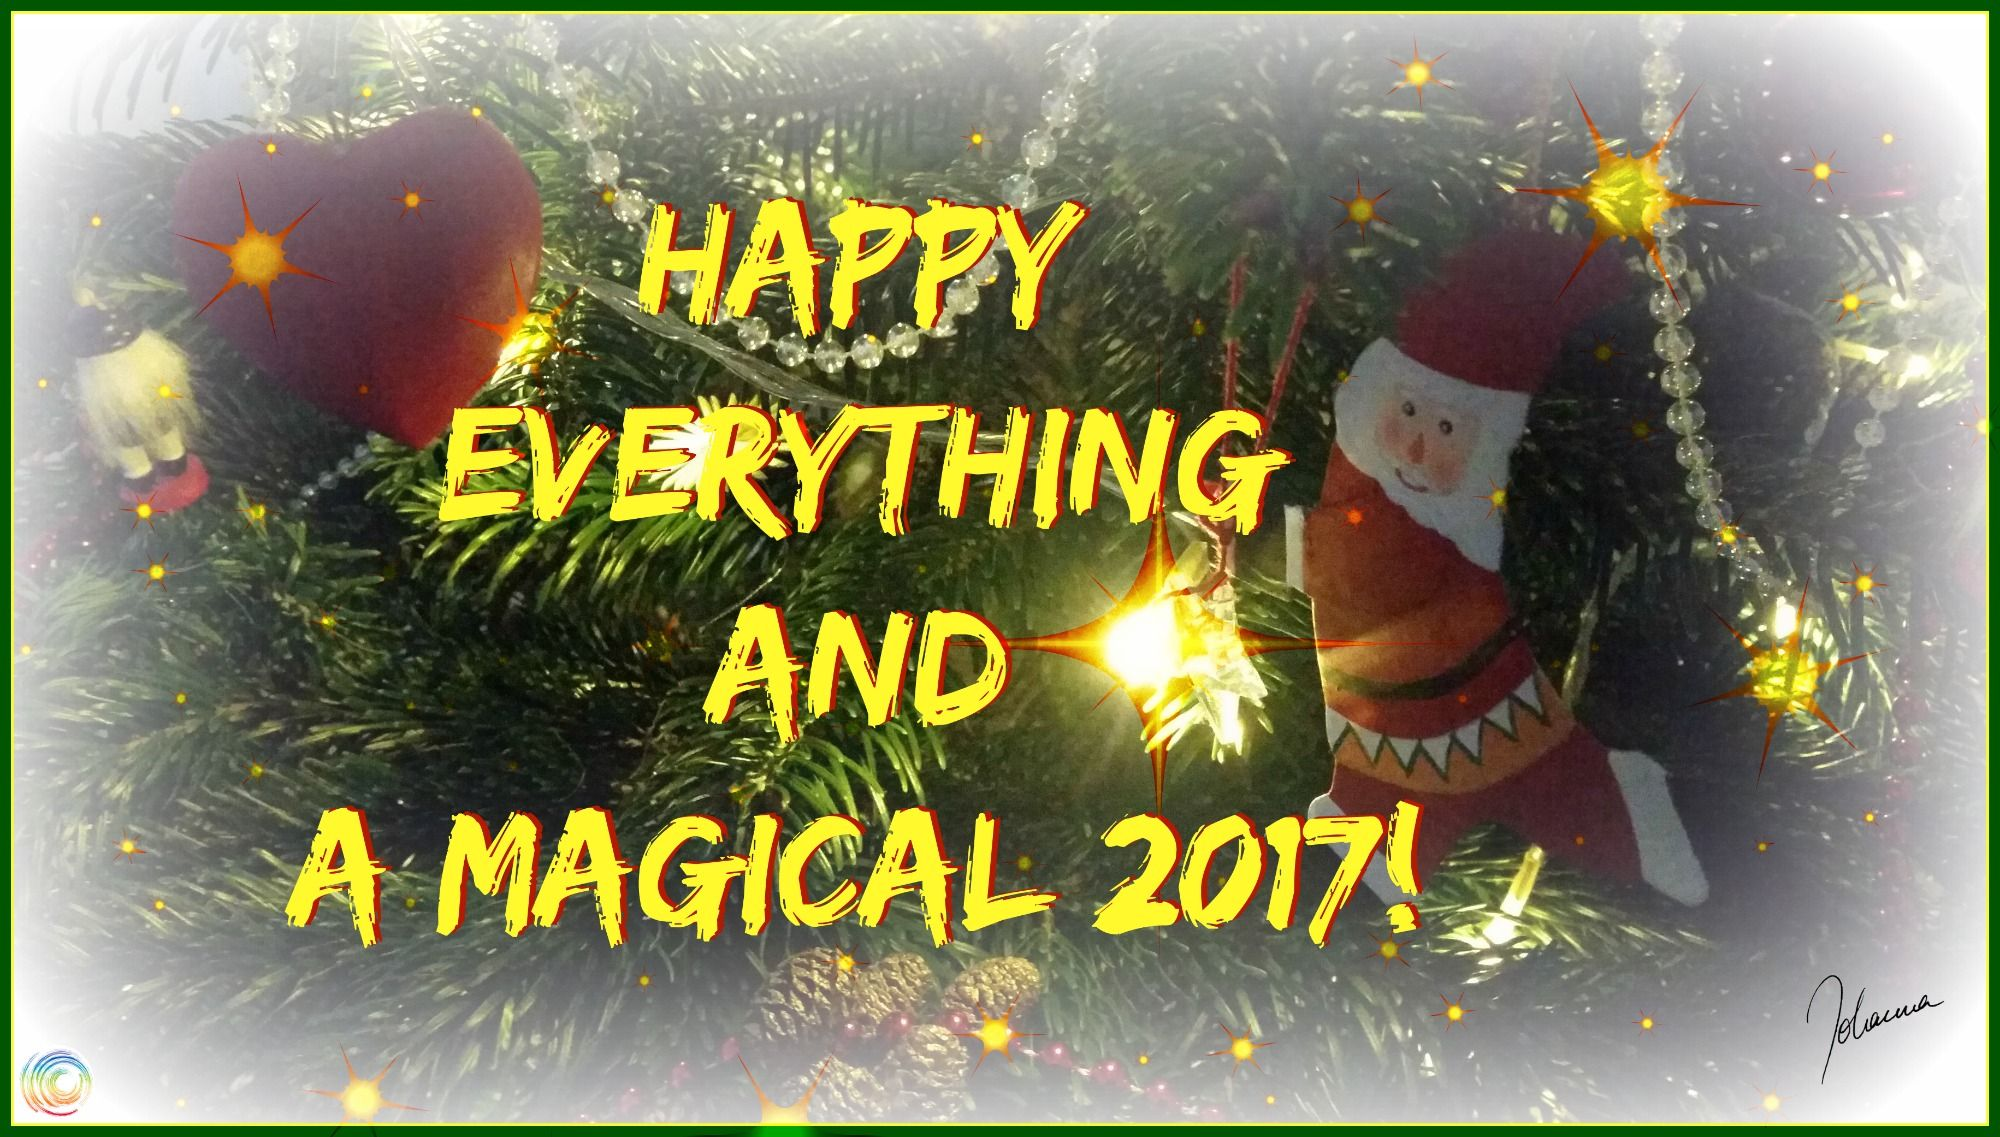 Happy everything and a magical 2017!